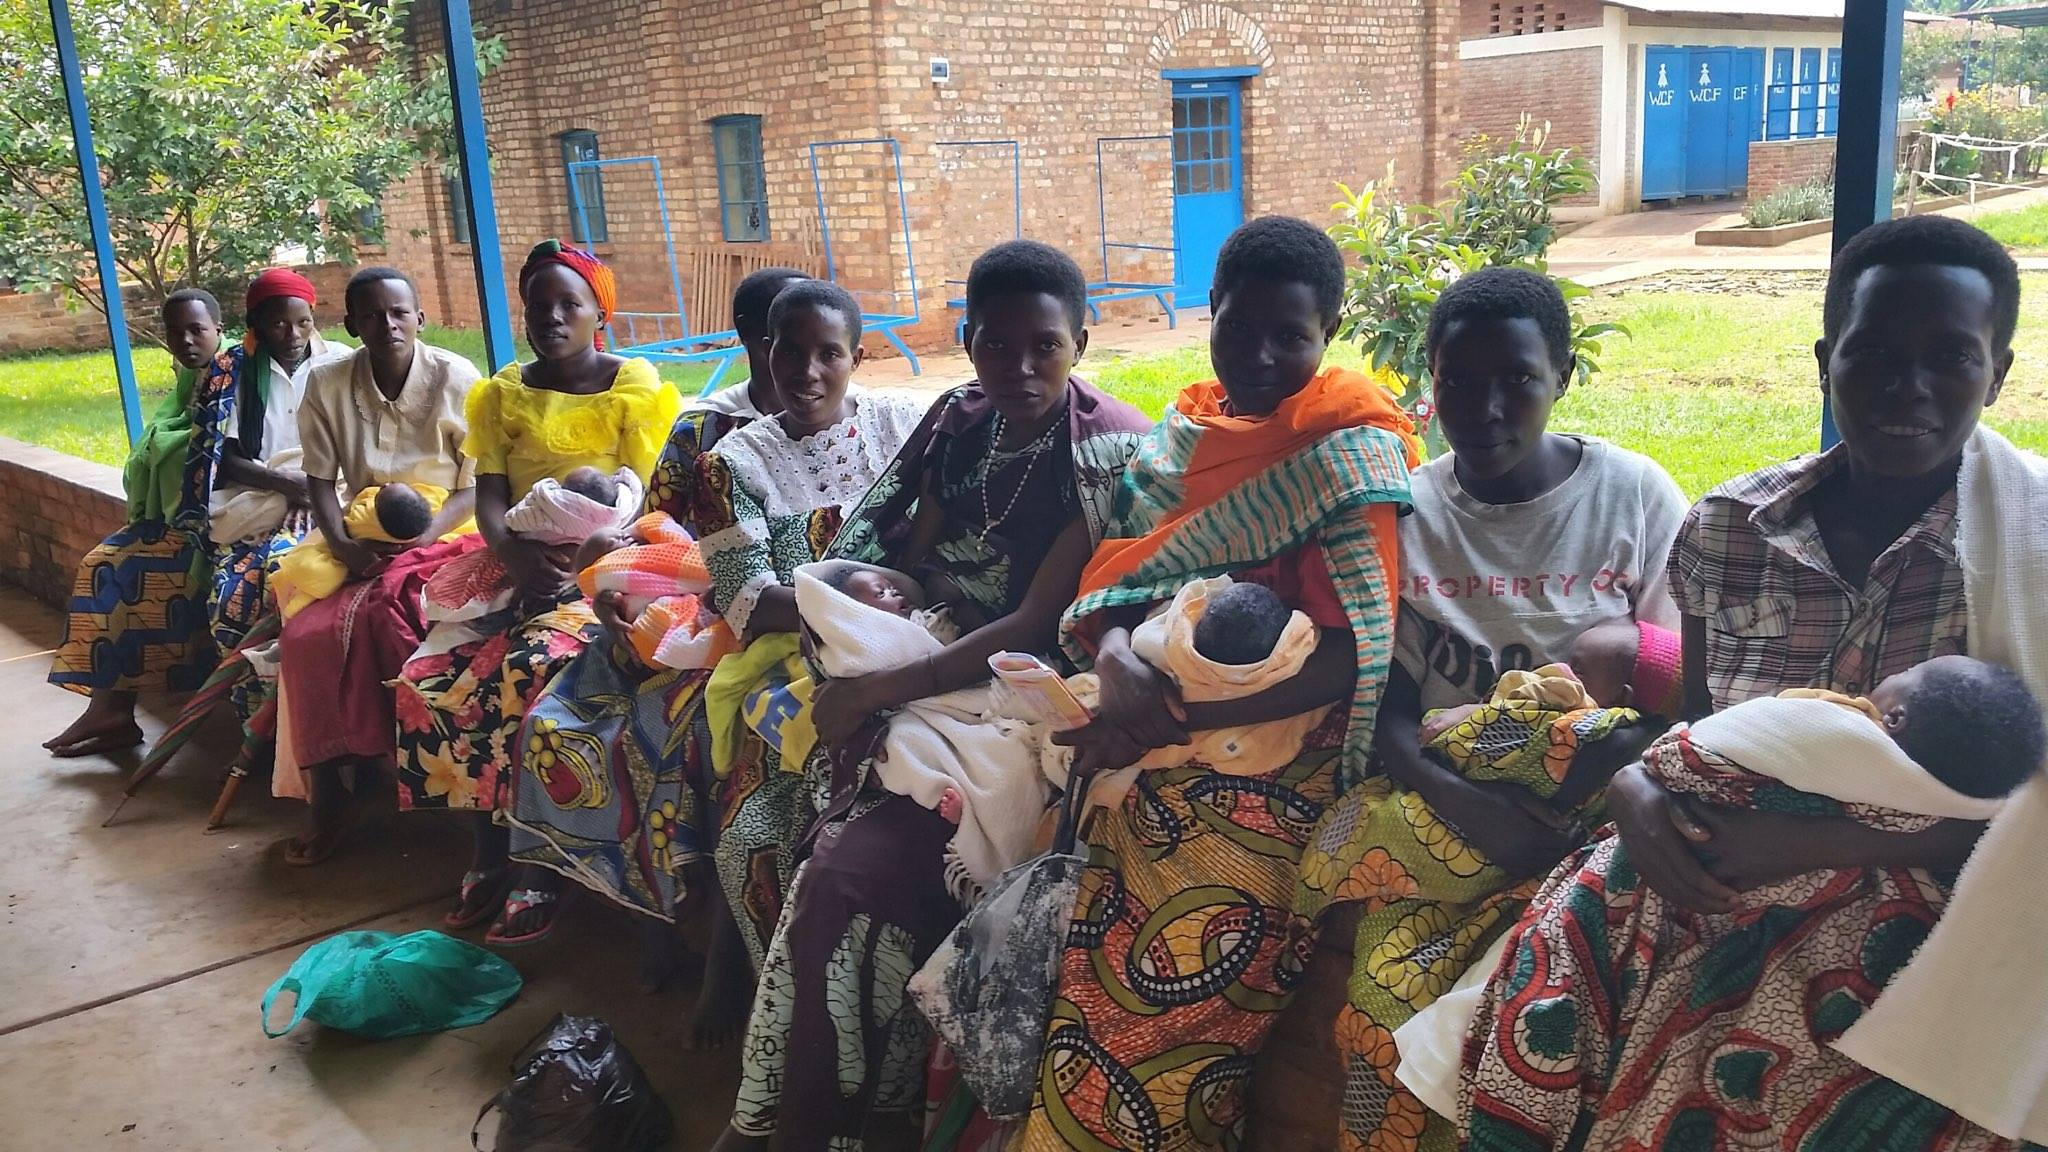 Mothers line up with their infants for perinatal care in a rural hospital in Burundi.